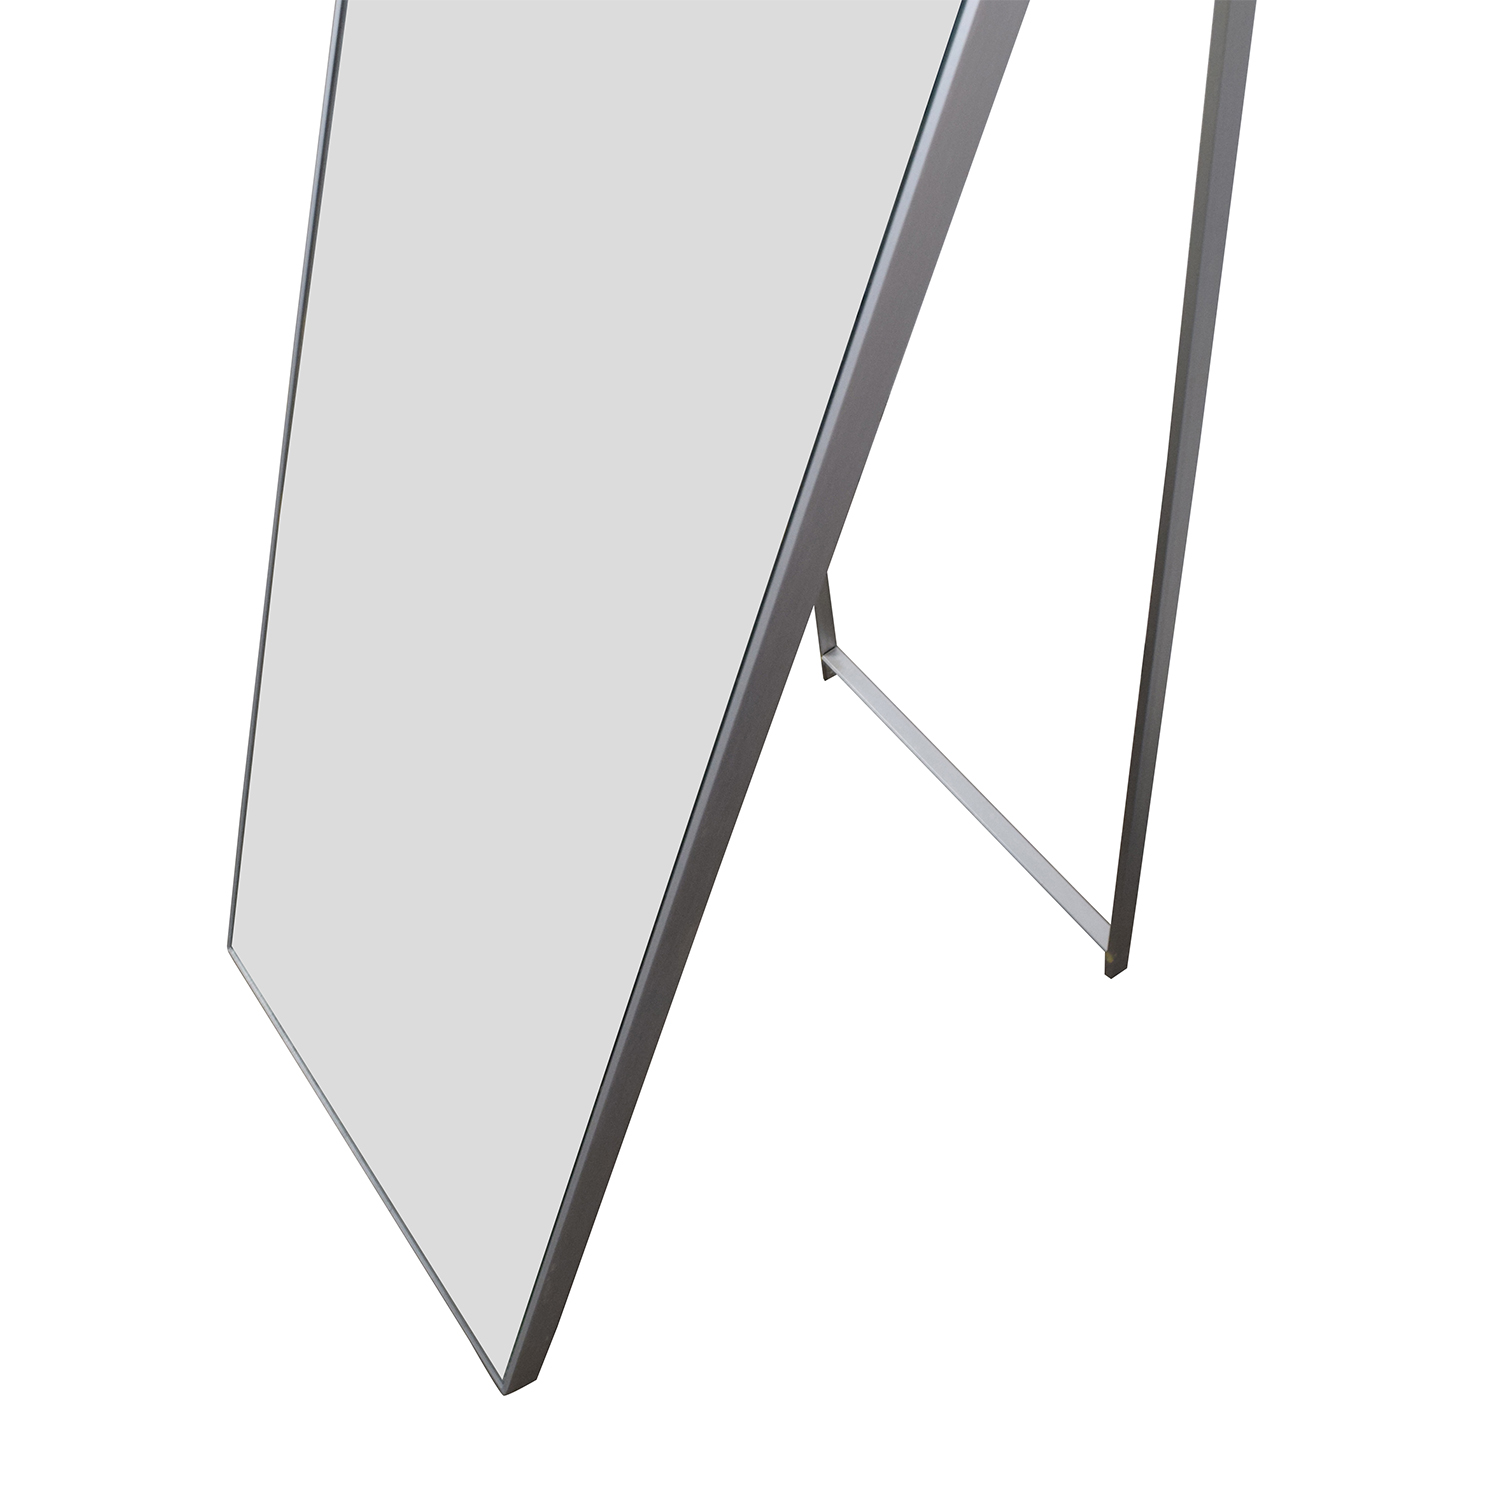 51% OFF - CB2 CB2 Floor Mirror with Silver Frame / Decor